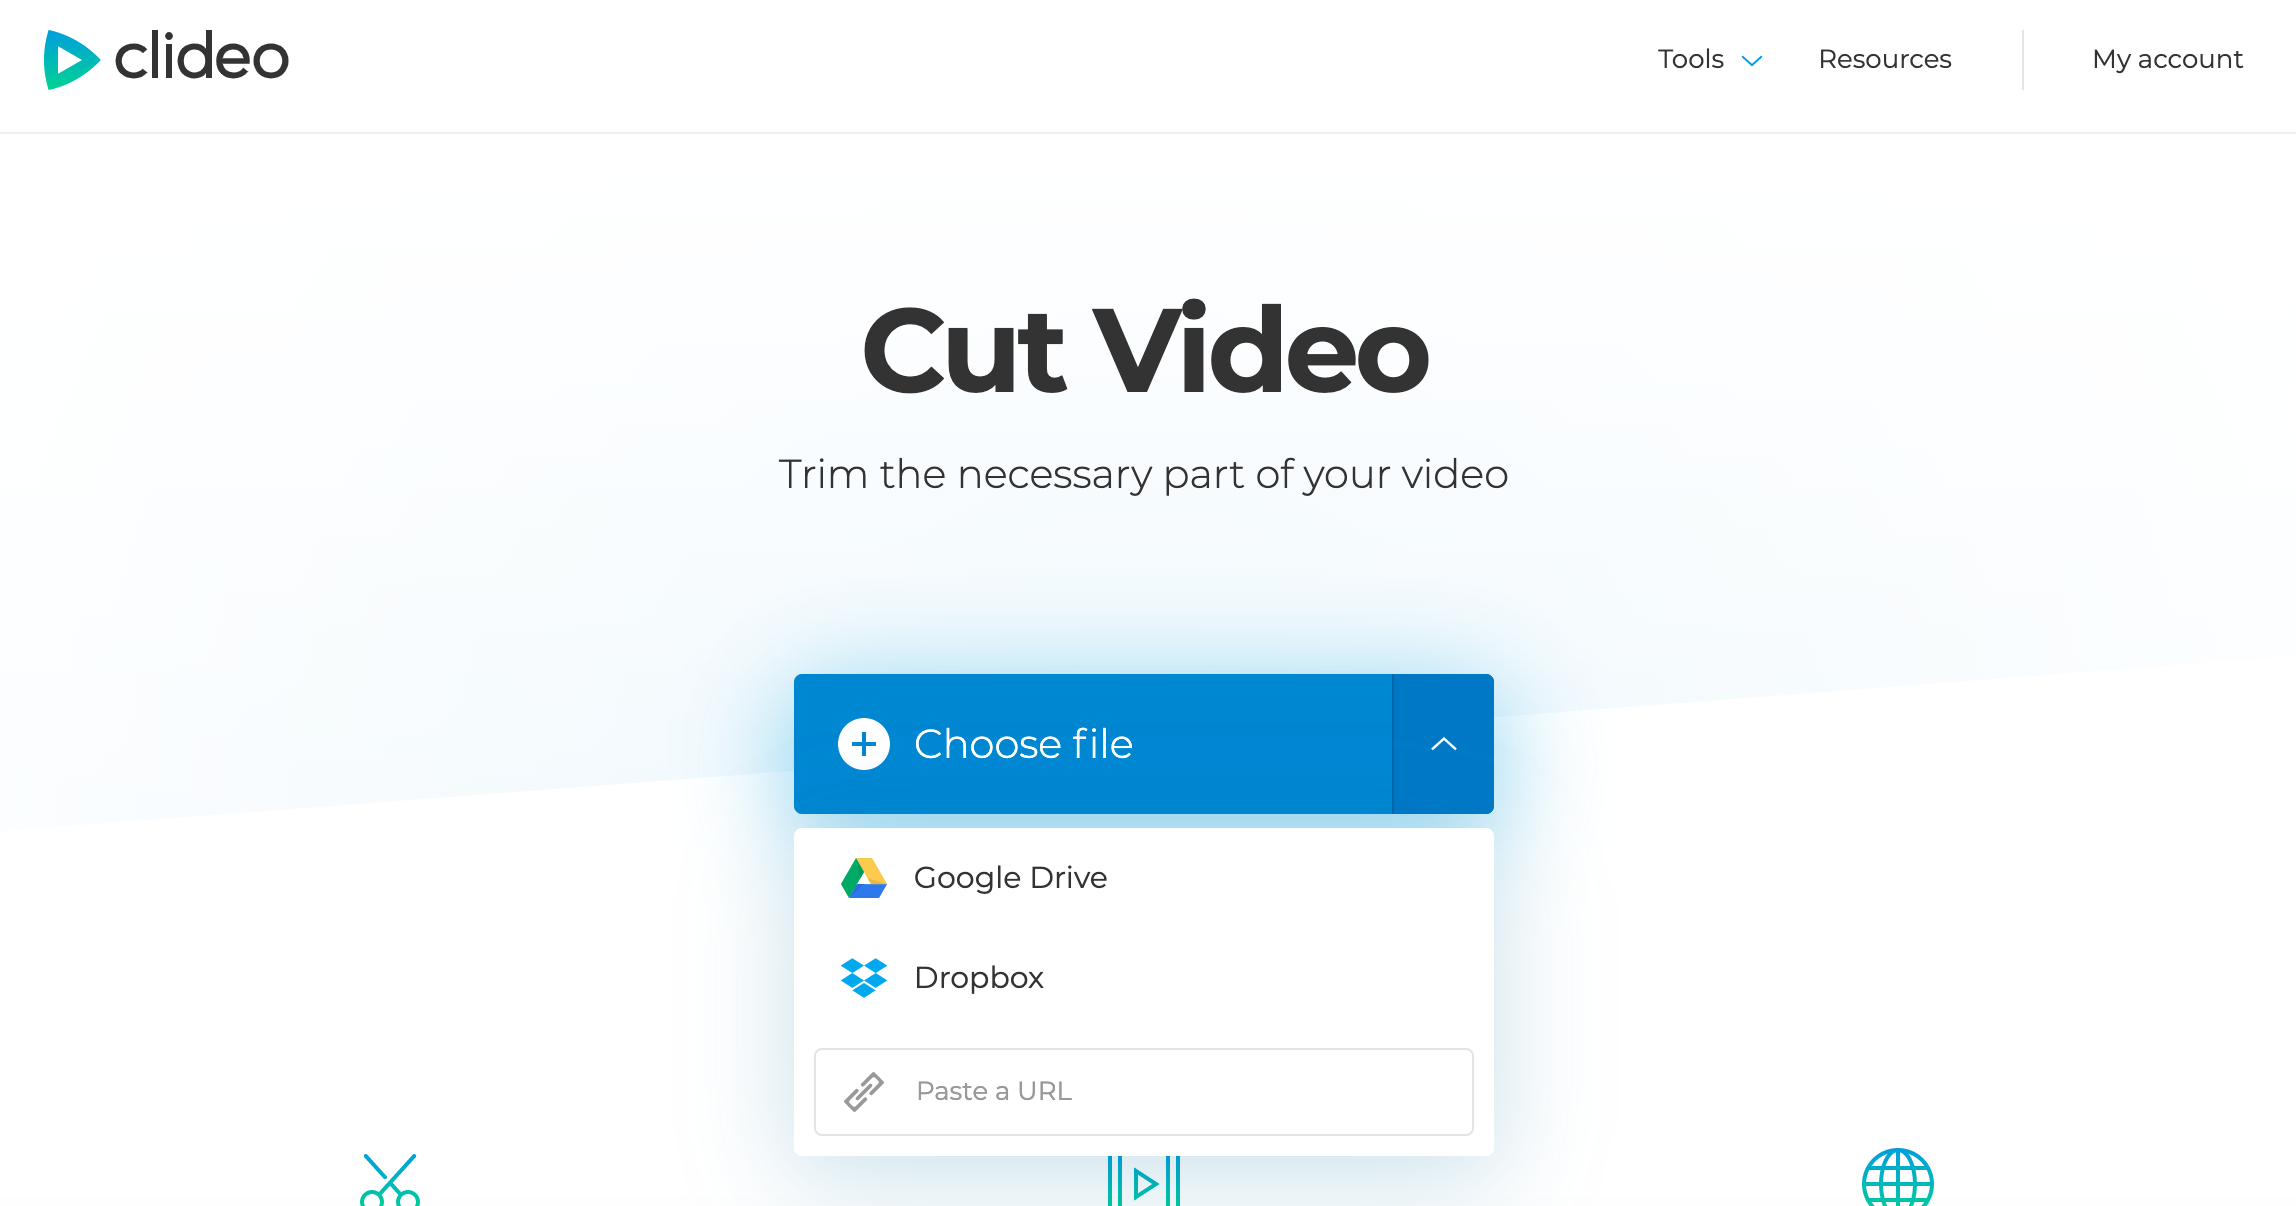 Add a video you want to cut from your device